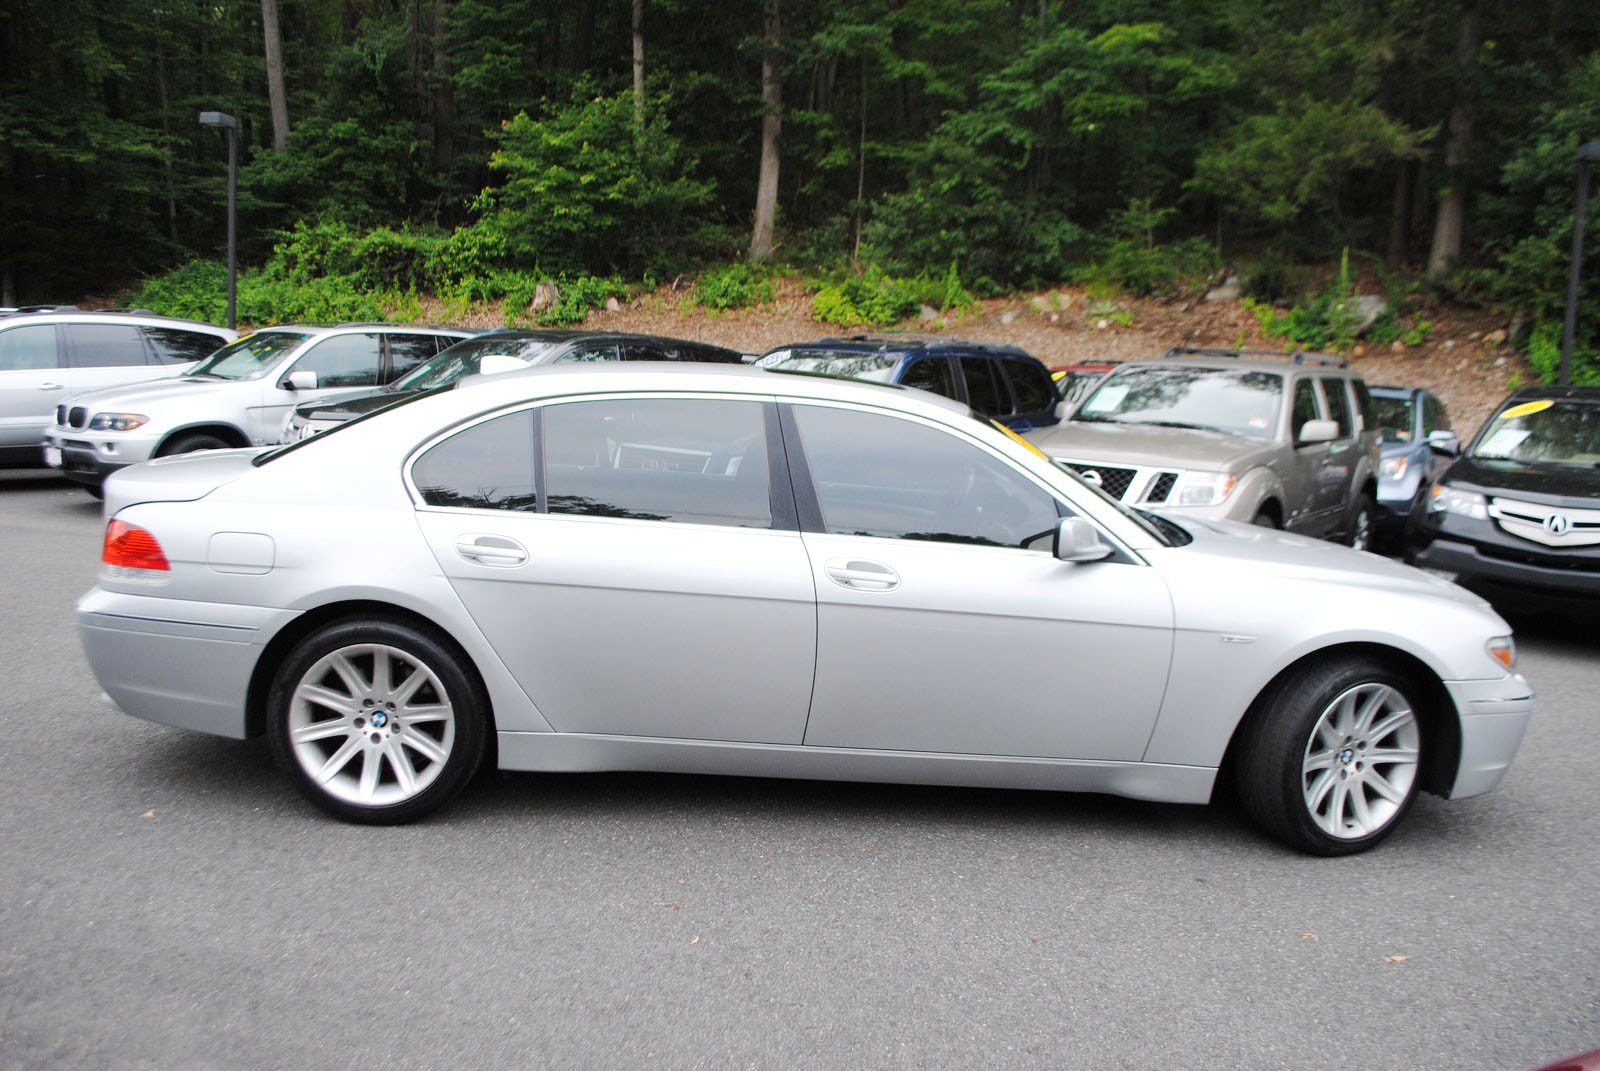 Used 2004 Bmw 745li For Sale